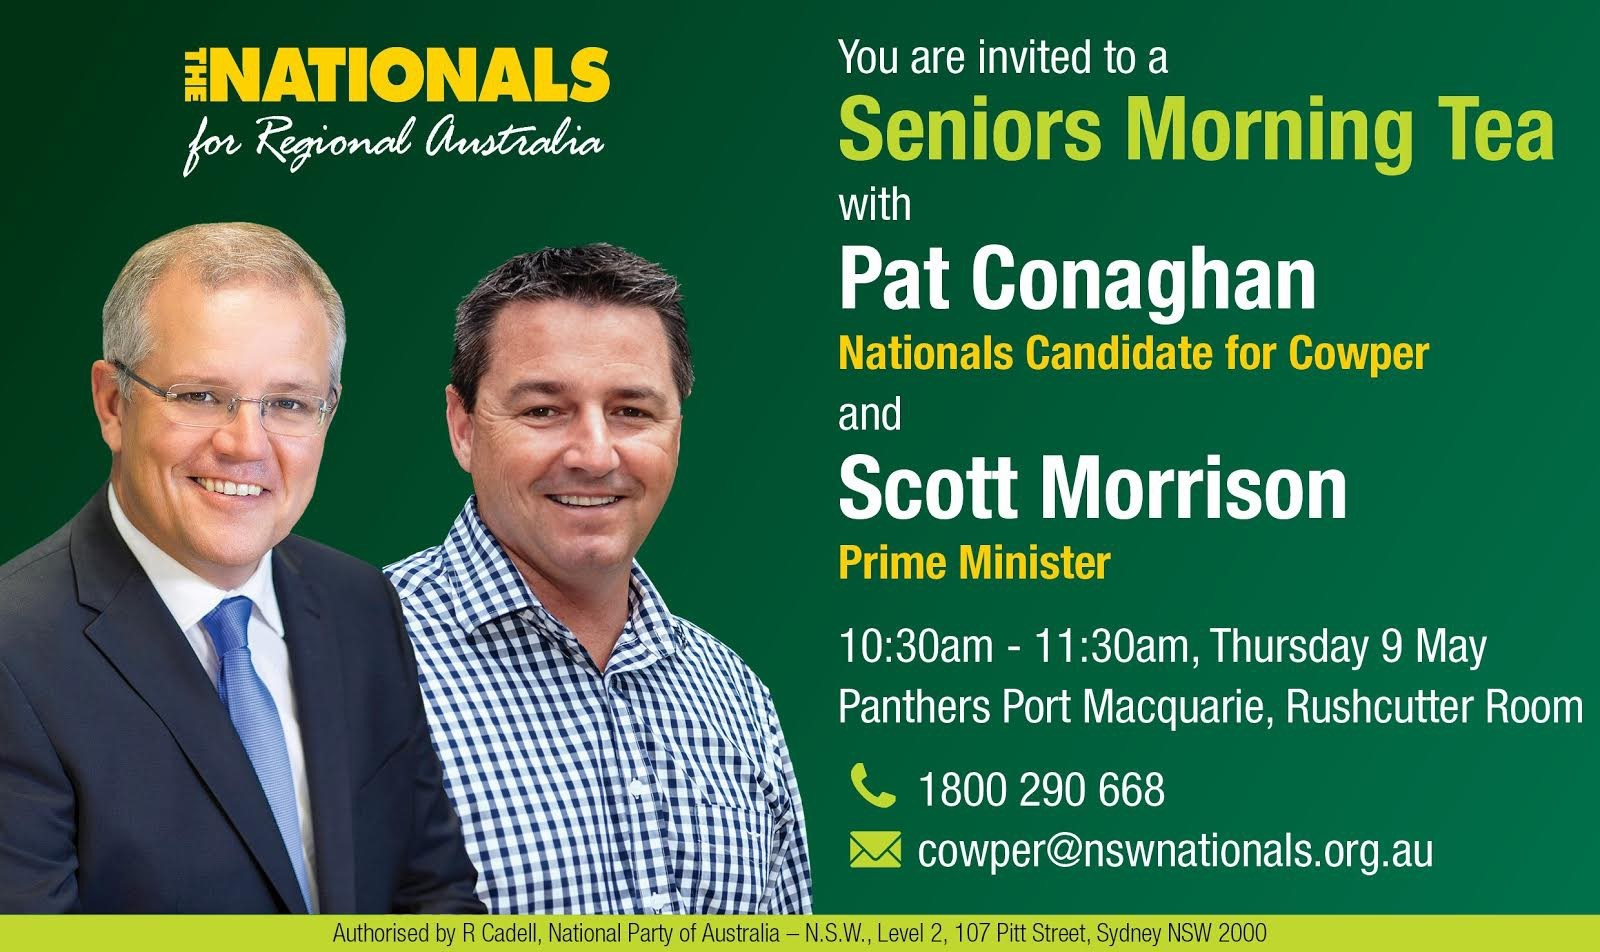 The official invite ahead of the Prime Minister's visit to Cowper on Thursday.